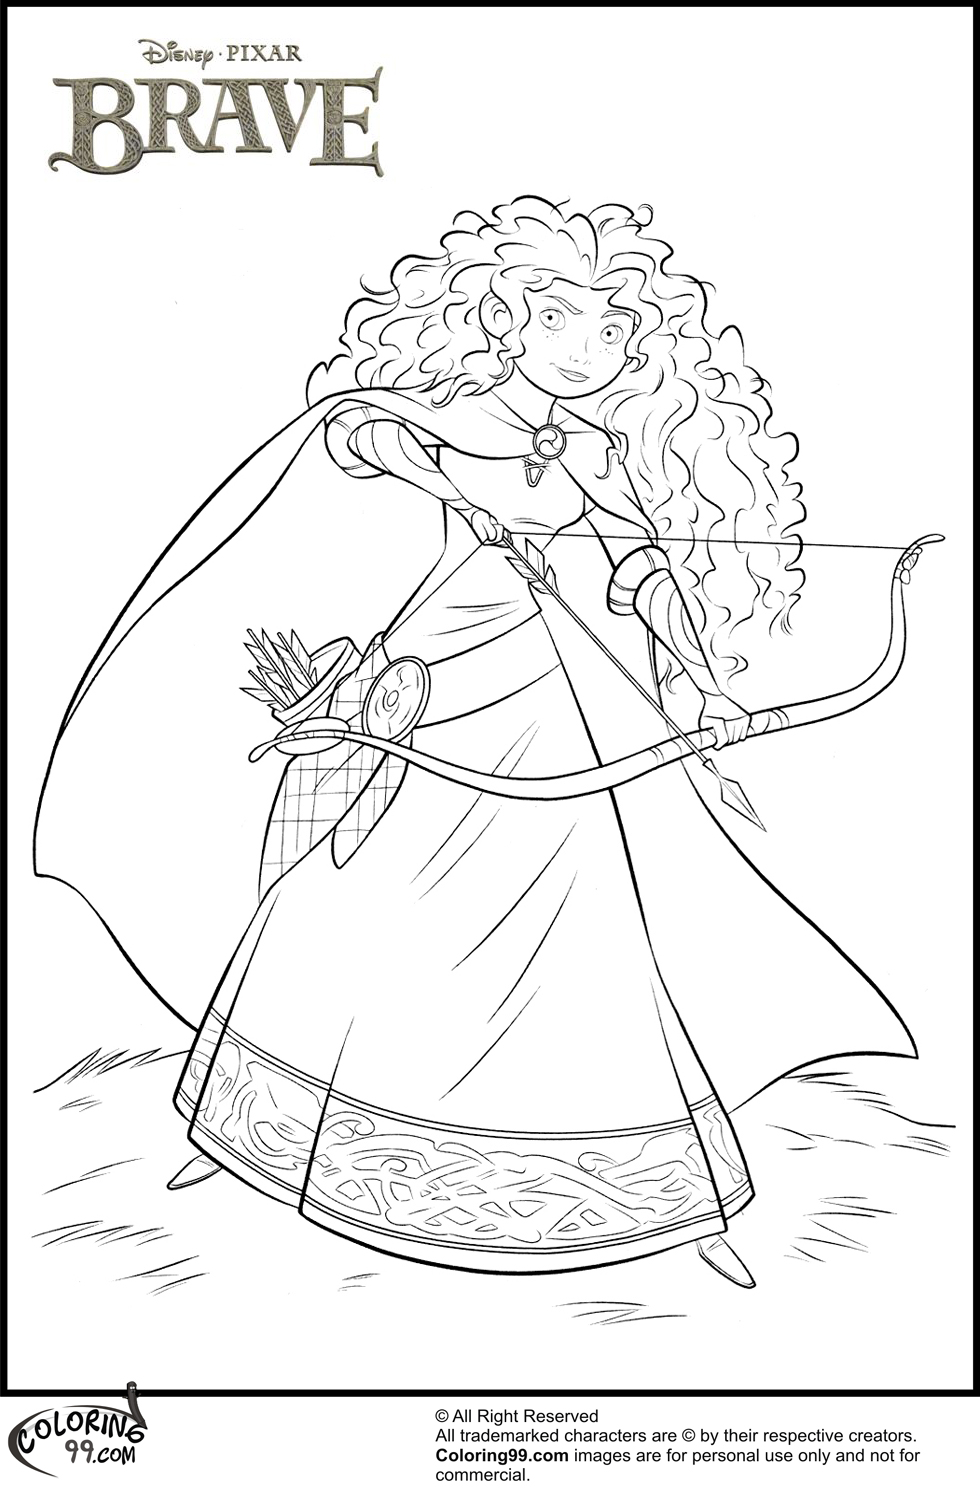 Brave Merida Disney Princess Coloring Page